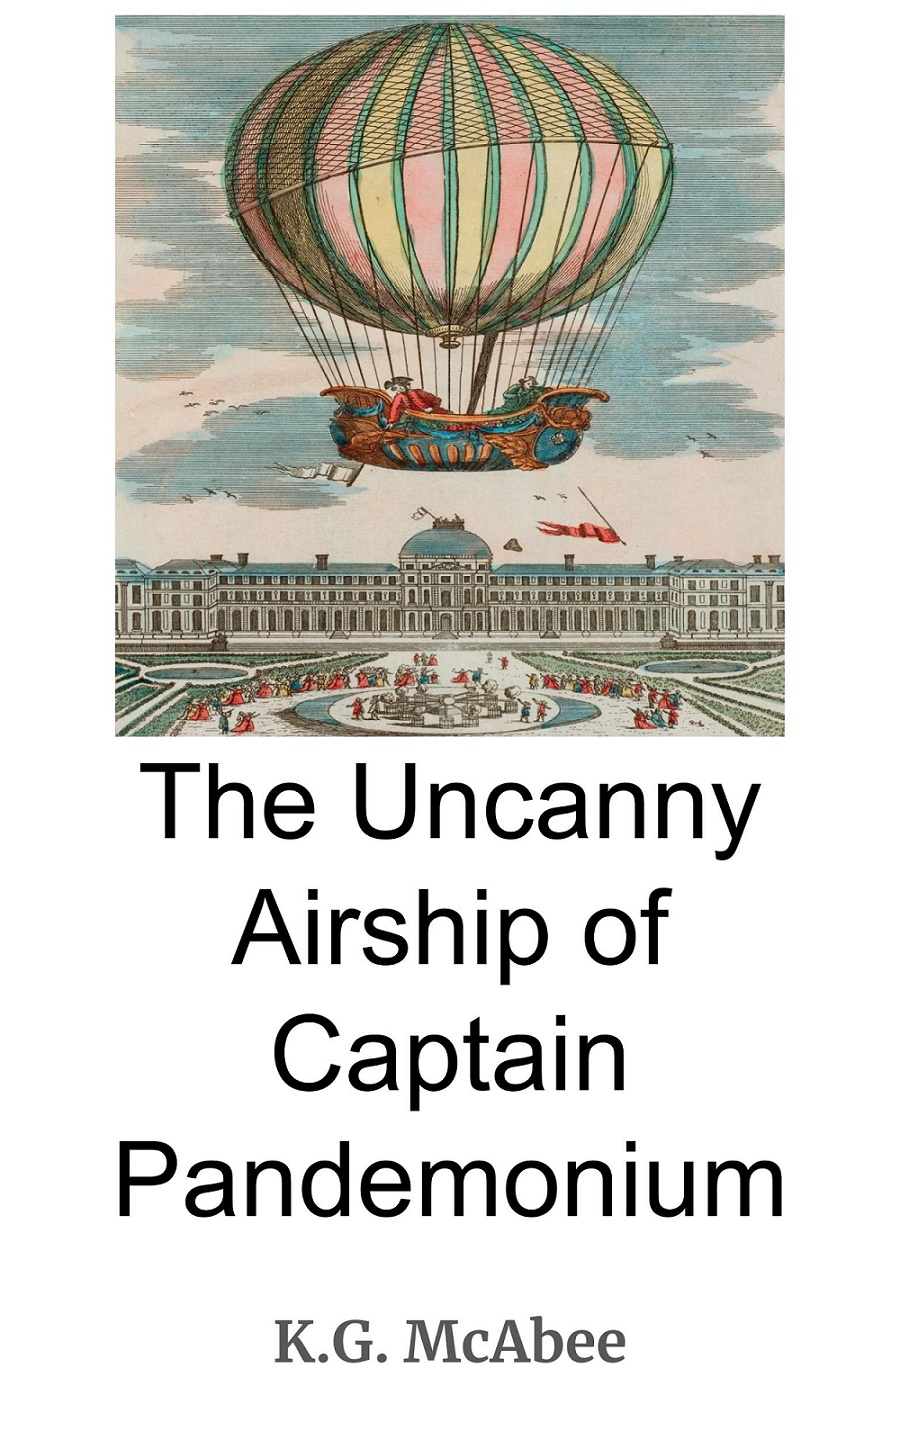 The Uncanny Airship of Captain Pandemonium Image